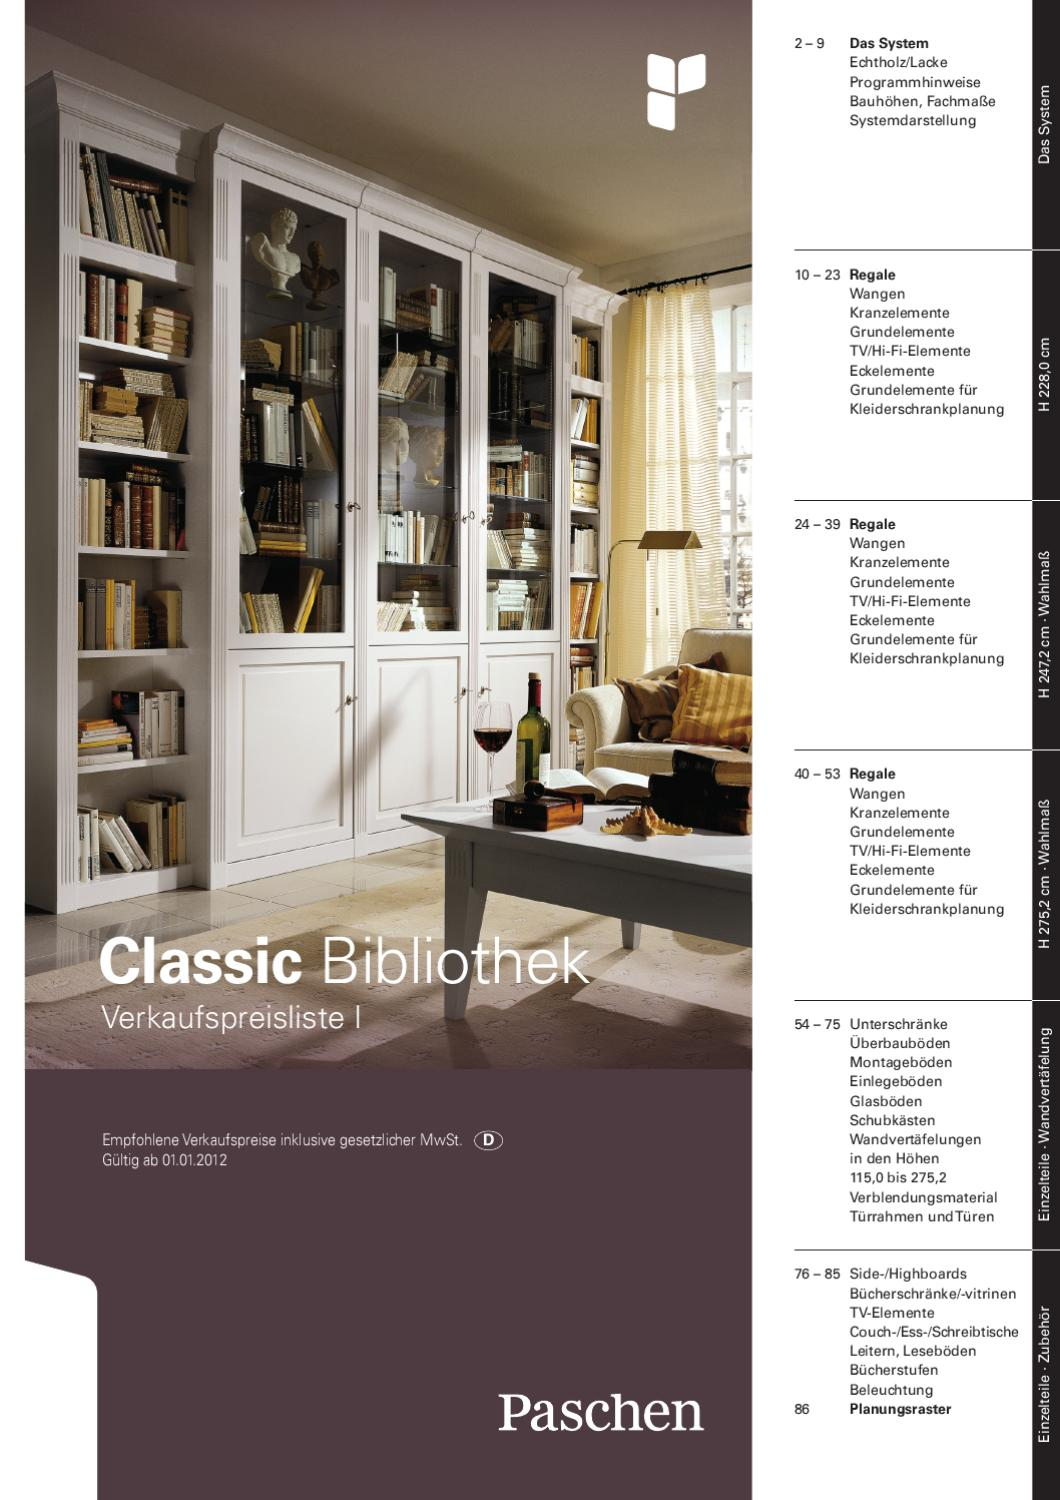 Paschen Typenliste Classic Bibliothek By Christian Bahlinger Issuu